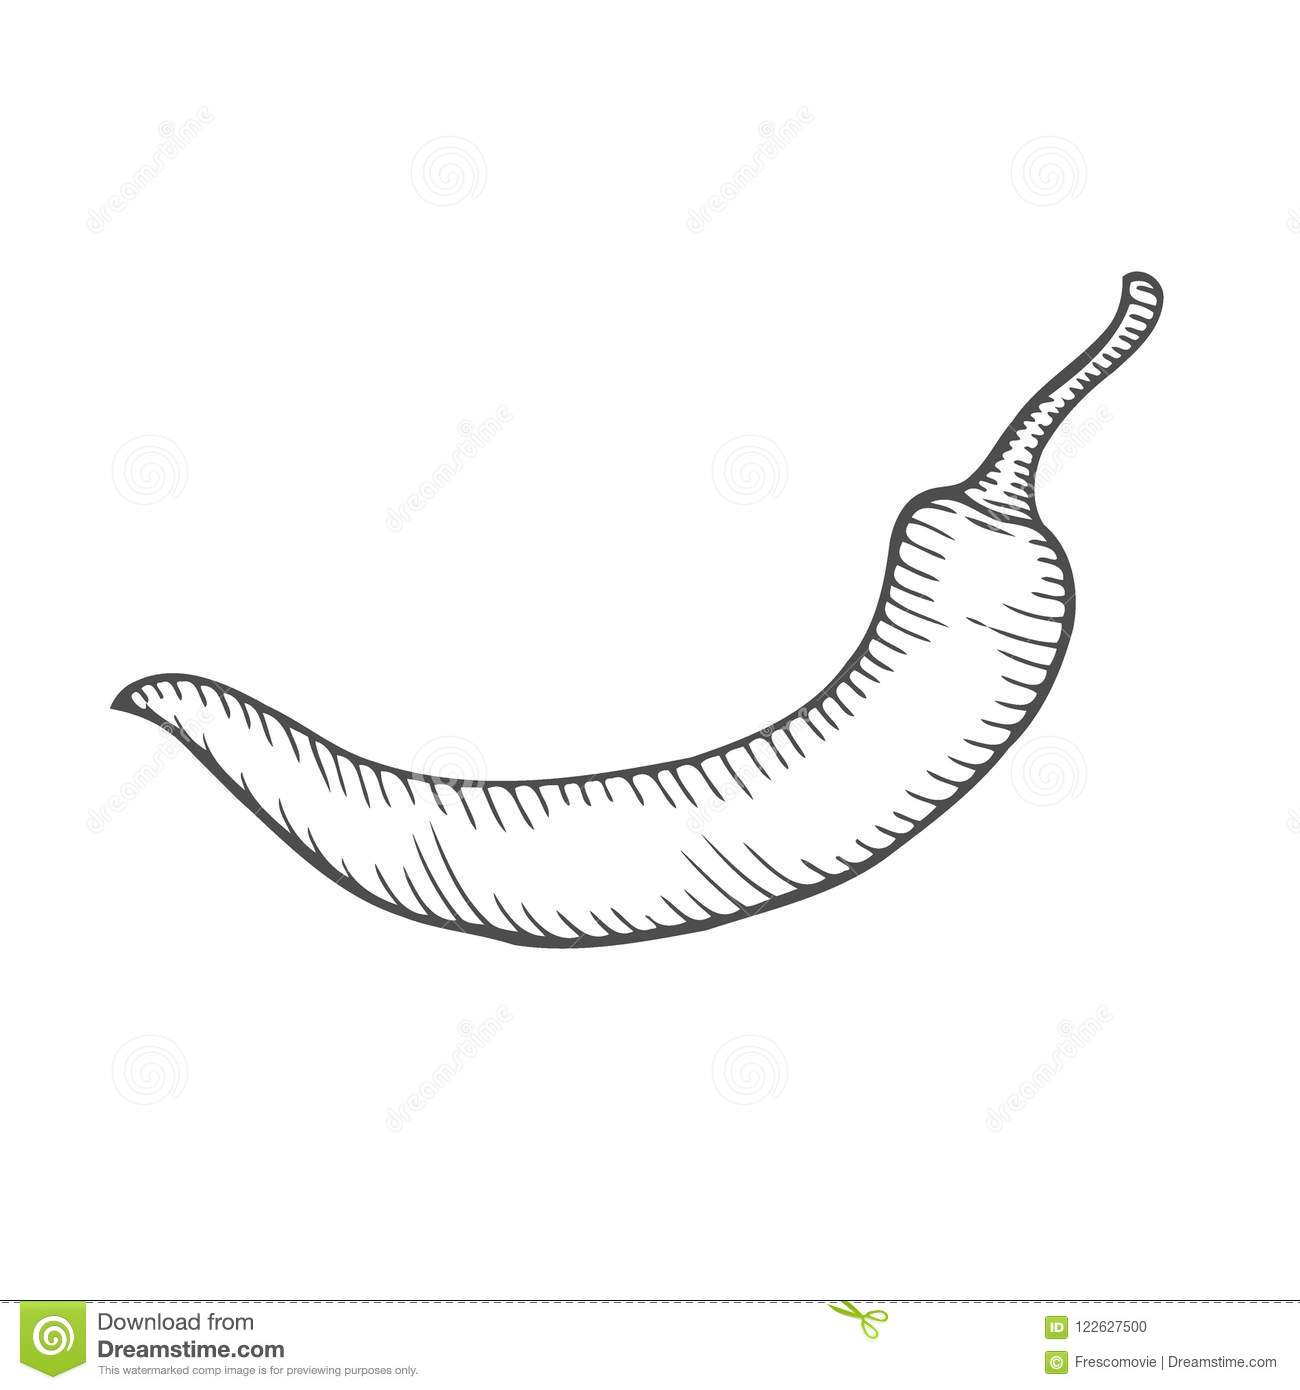 Chilly pepper Vector